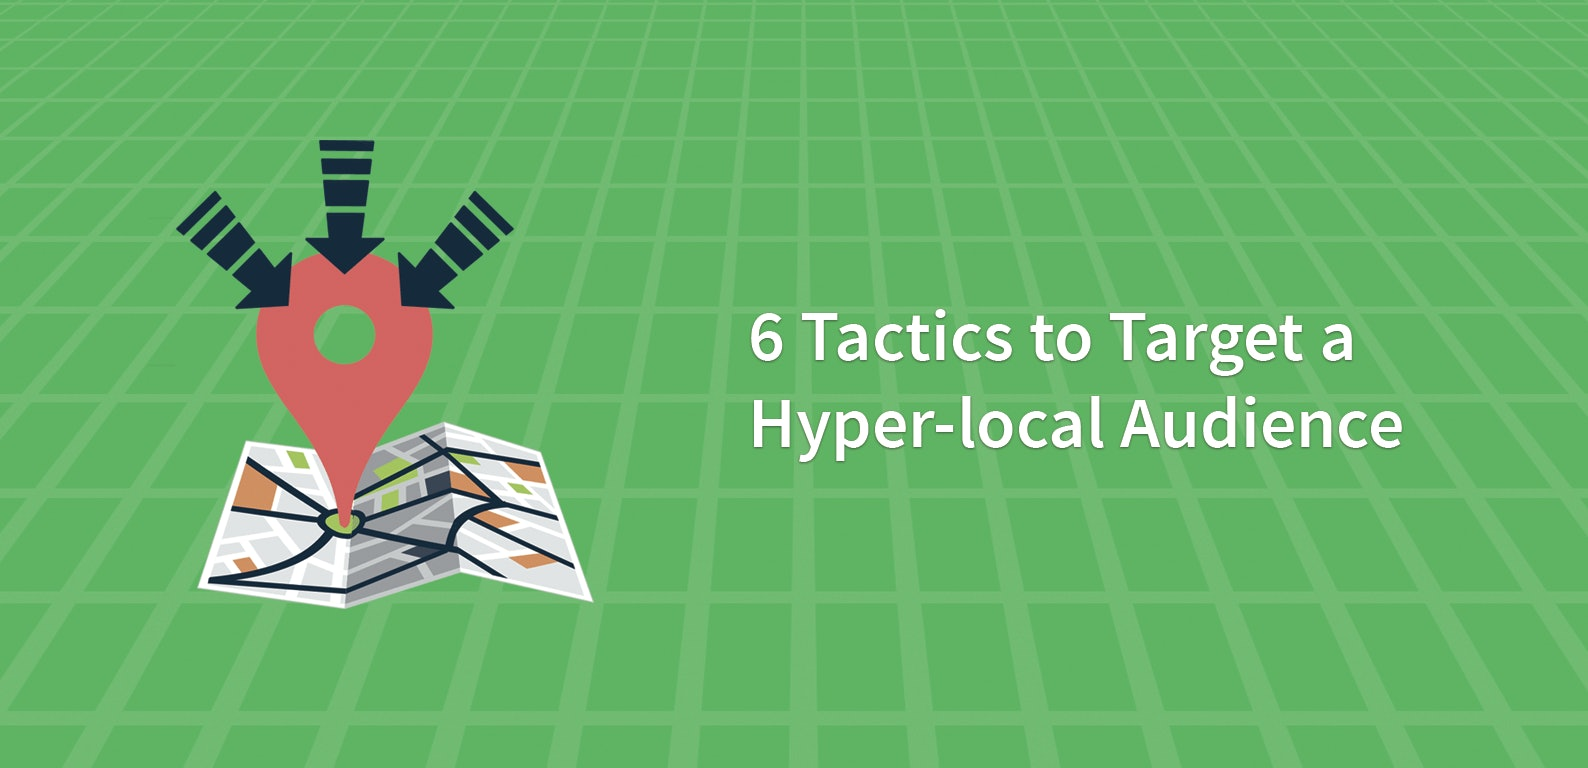 6 Tactics to Target a Hyper-local Audience